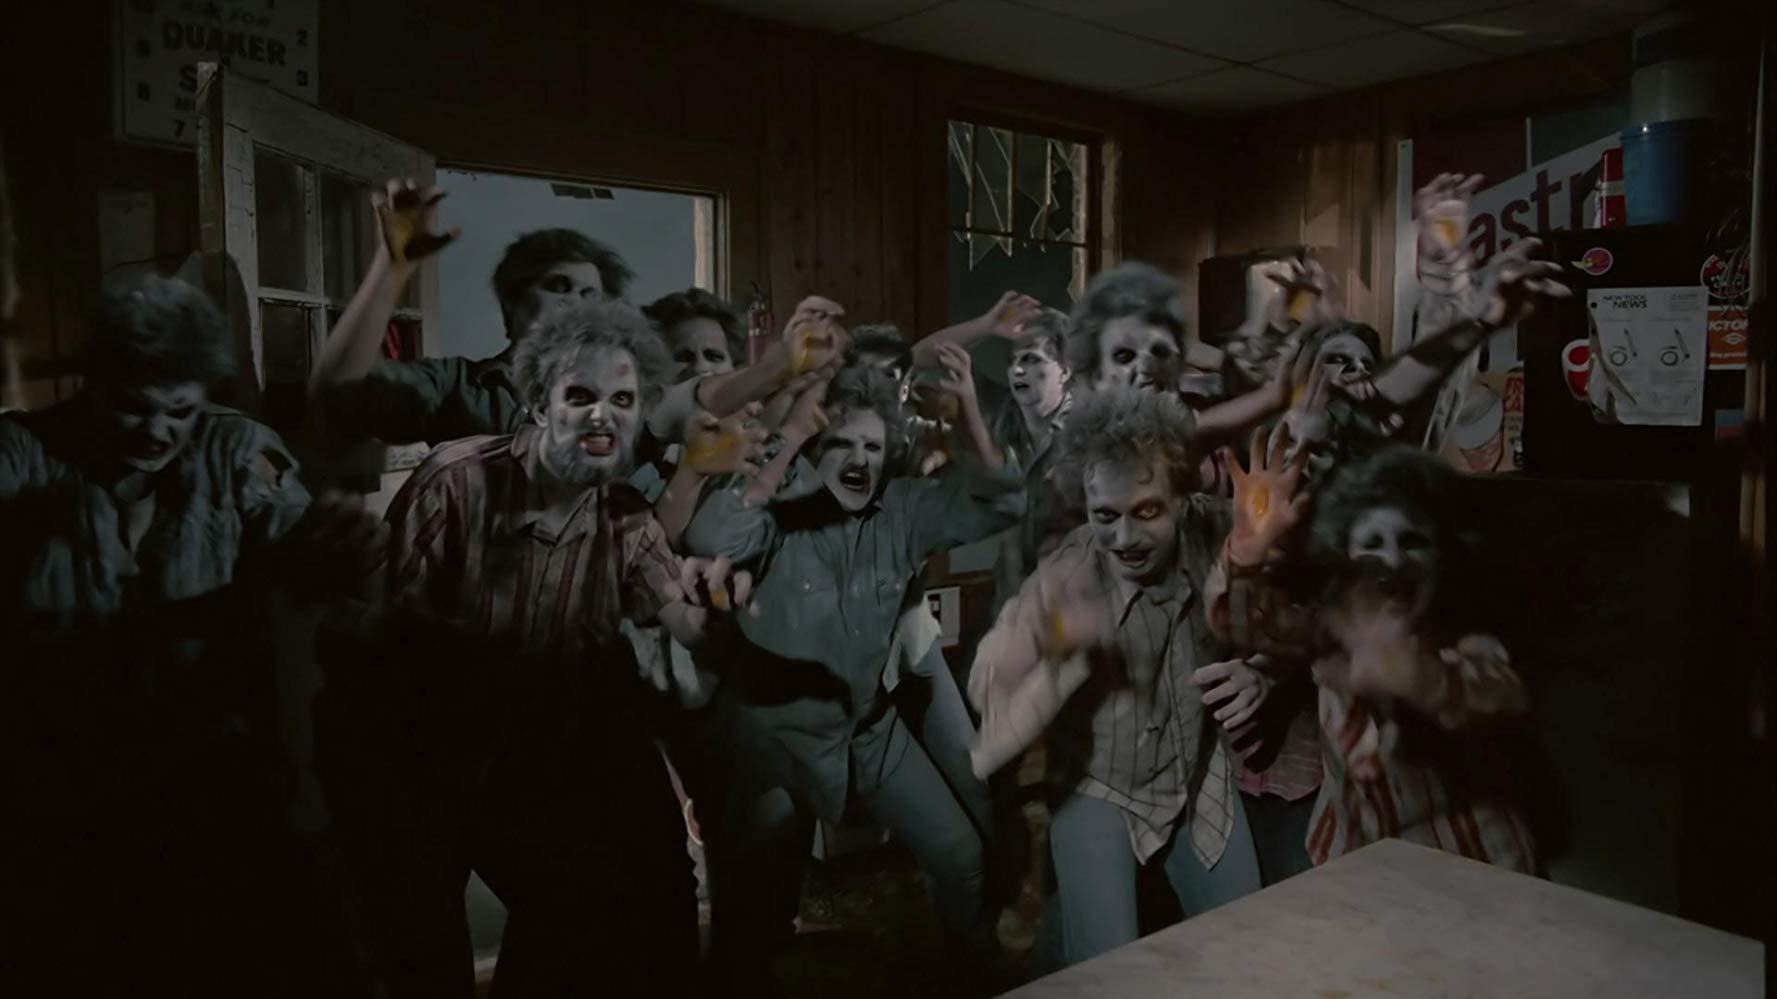 Toxic waste zombies in Mutant/Night Shadows (1984)